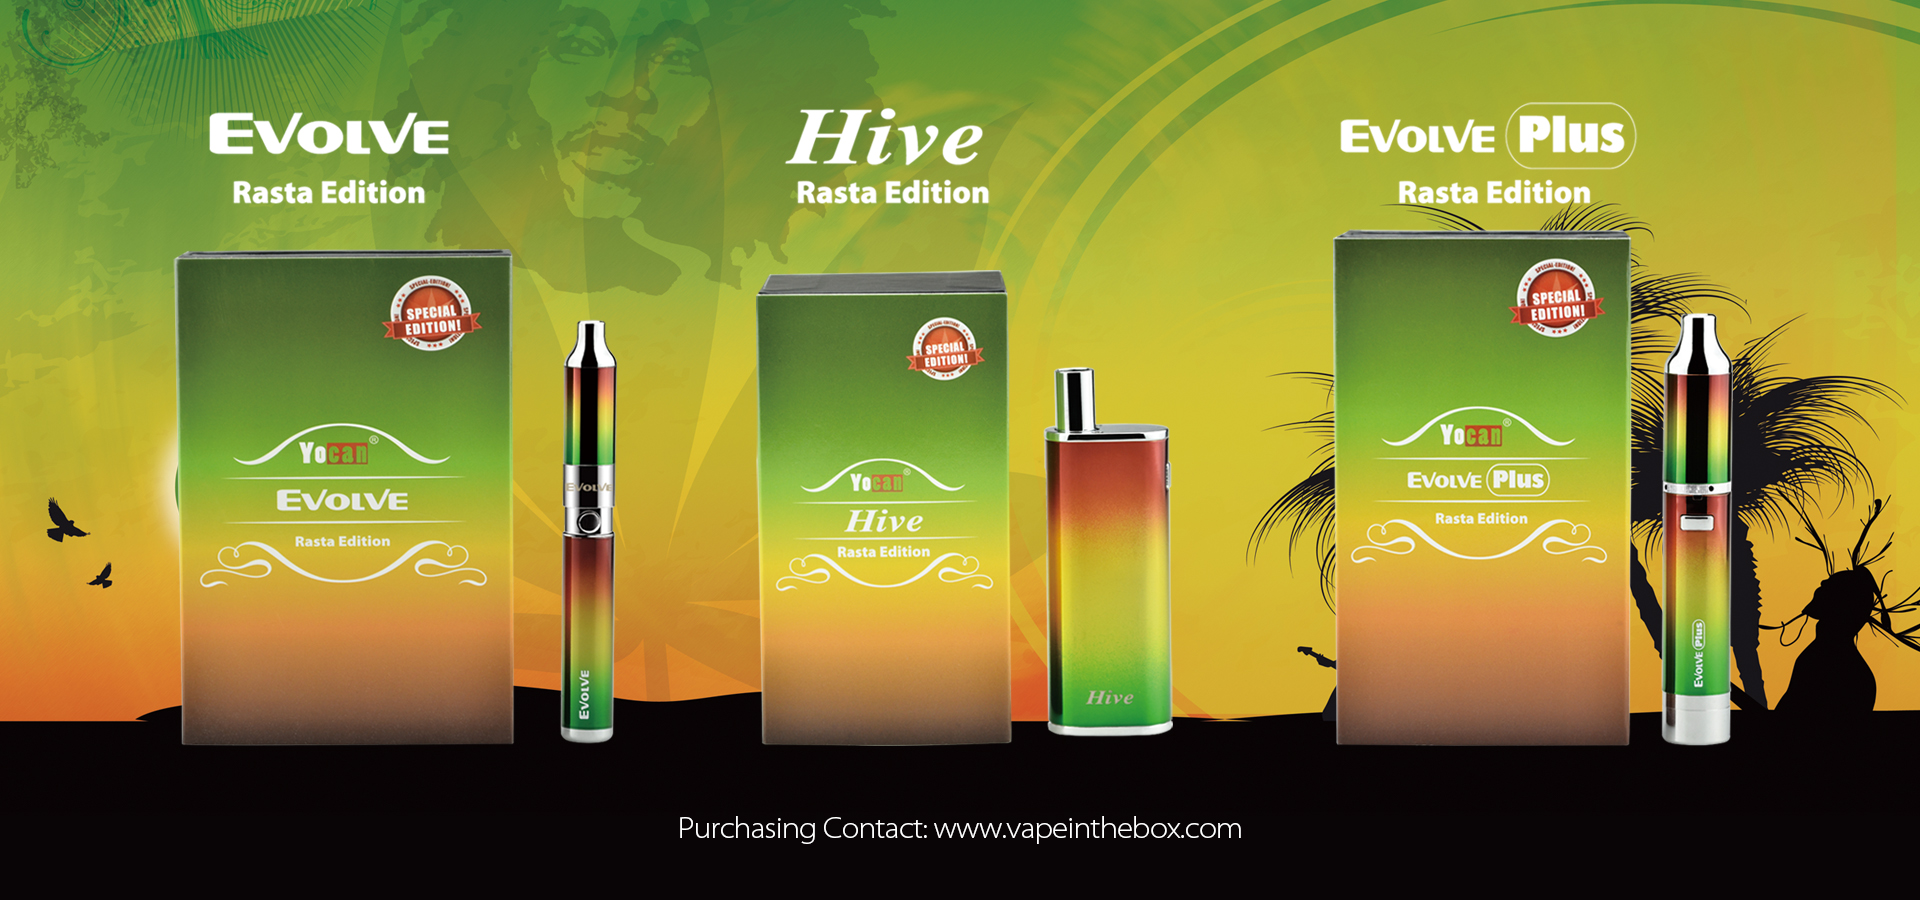 The Yocan Evolve Plus Rasta Edition is a new special edition version of the crowd favorite Evolve Plus.